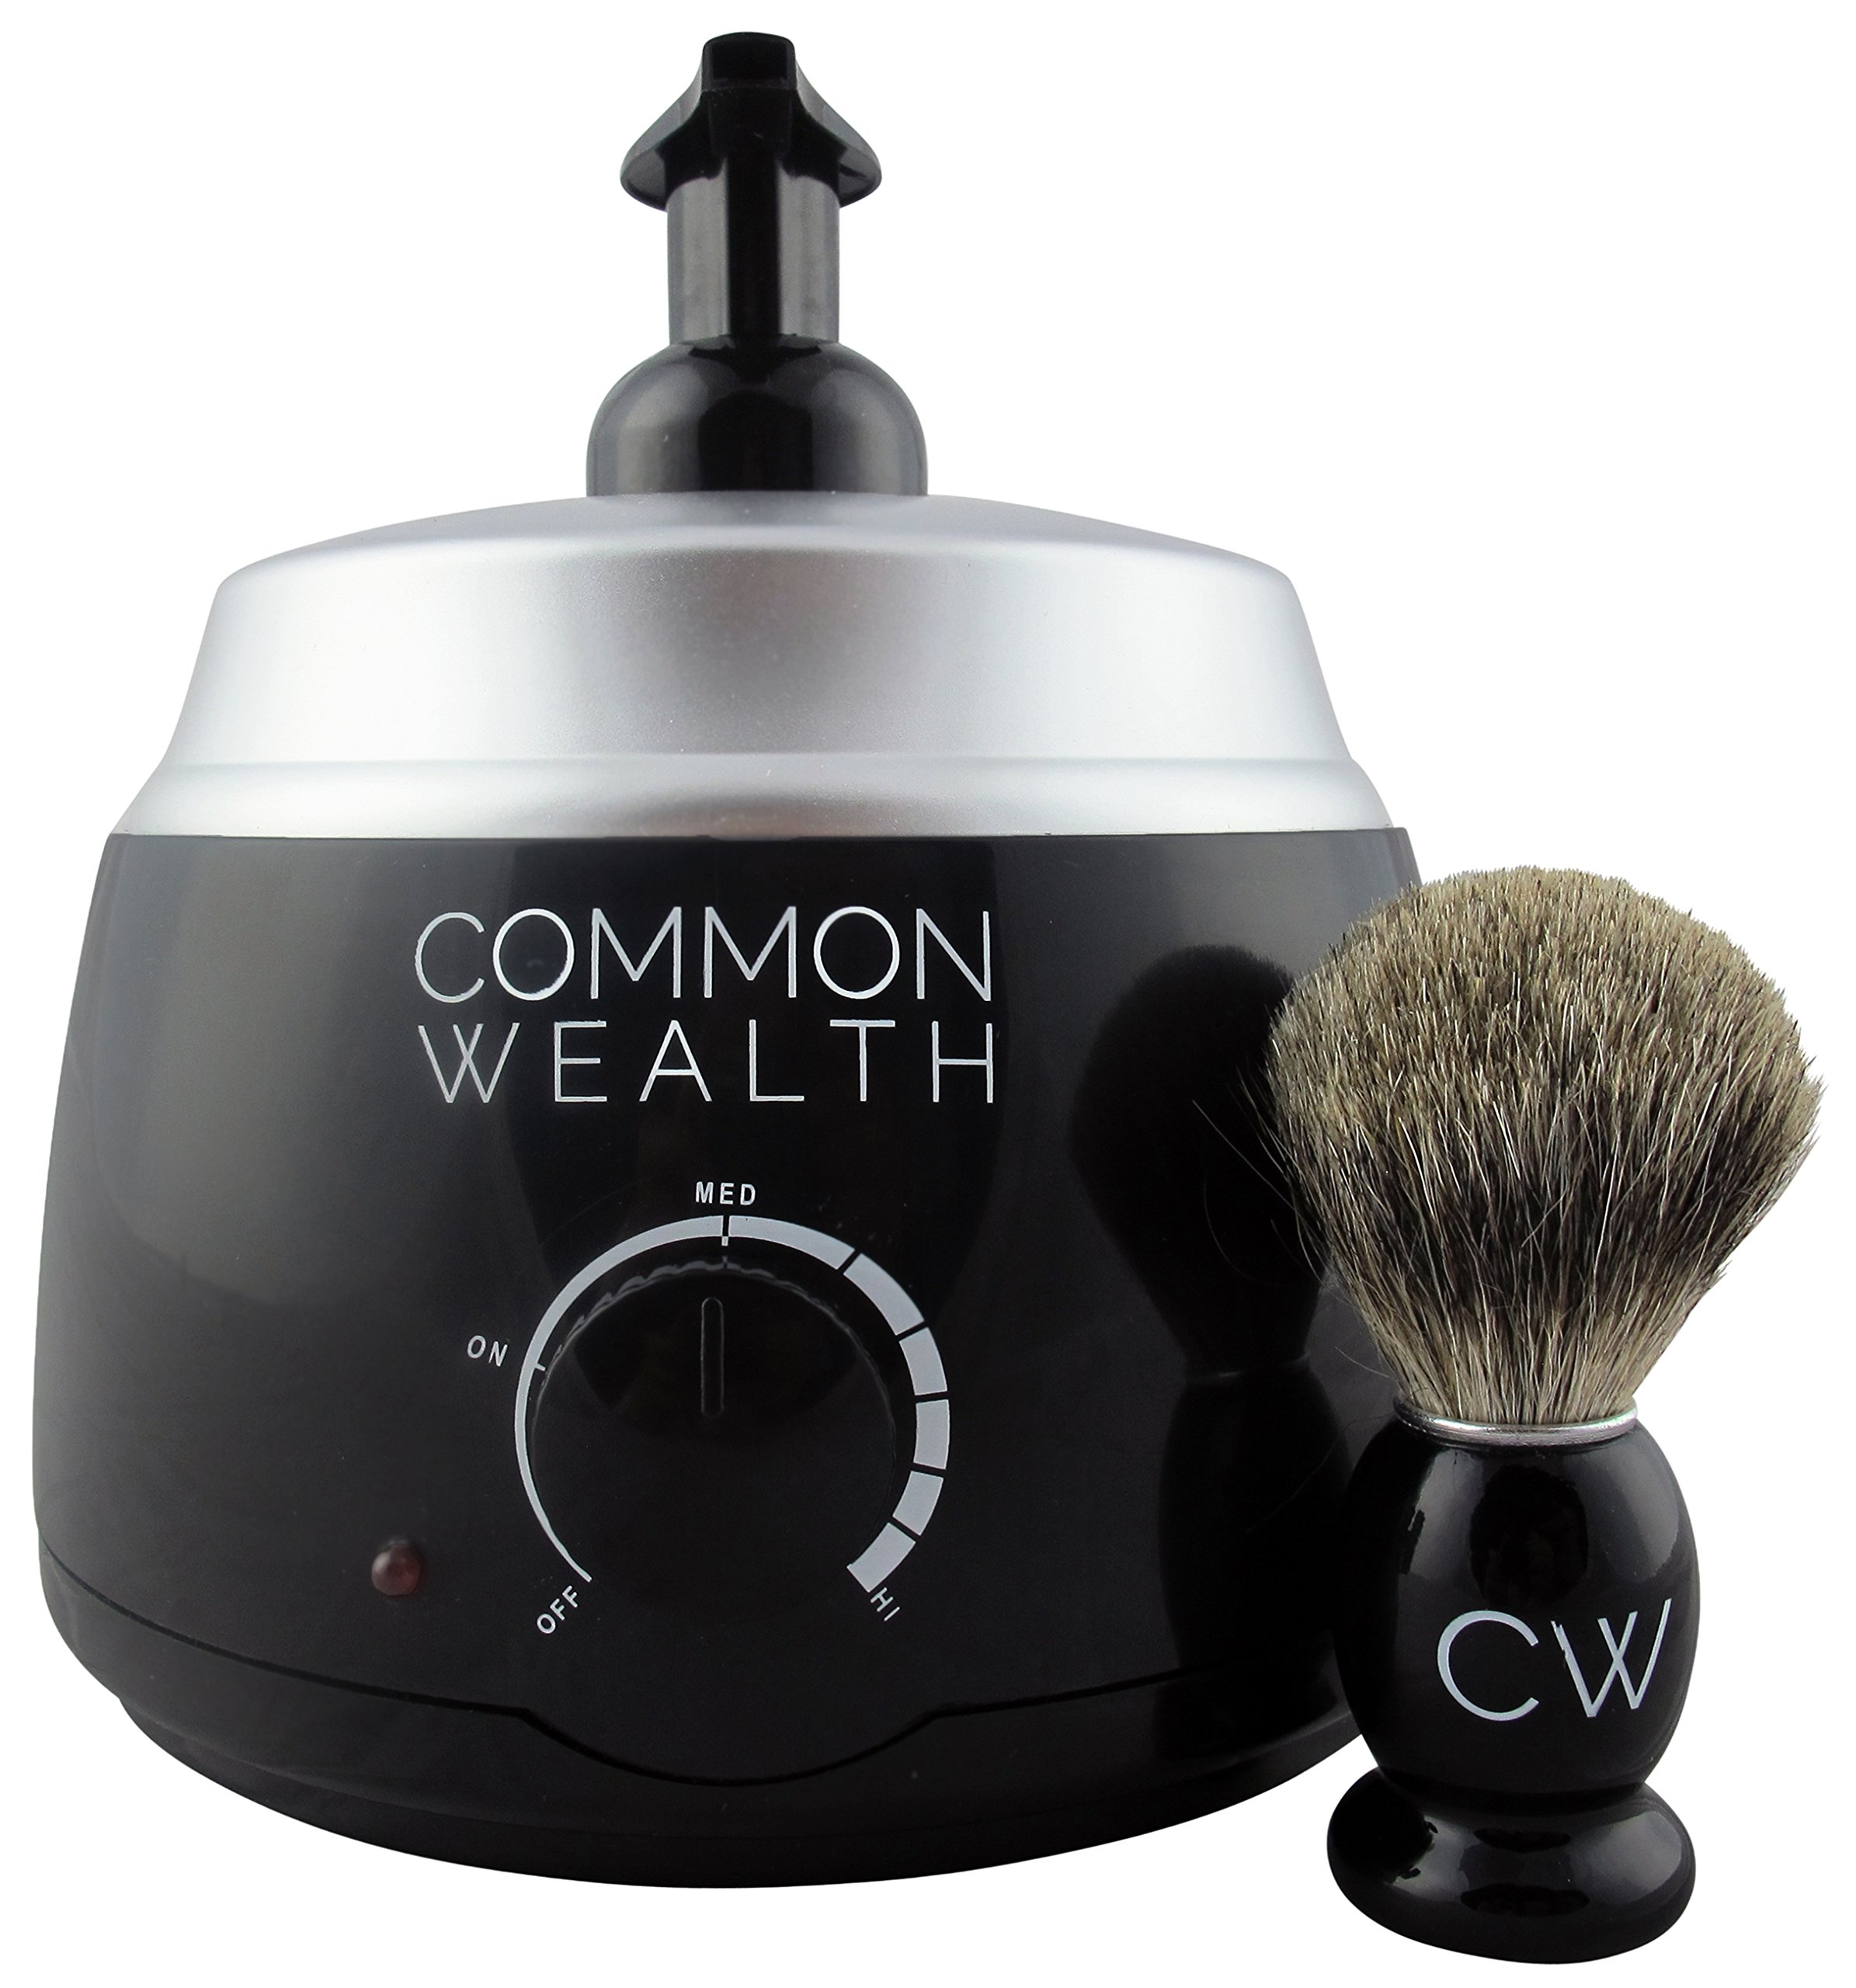 Common Wealth Professional Deluxe Hot Lather Machine Barber Latherizer King Size Black Color With Bonus 100% Badger Shaving Brush & 8oz Lather Concentrate by Commonwealth